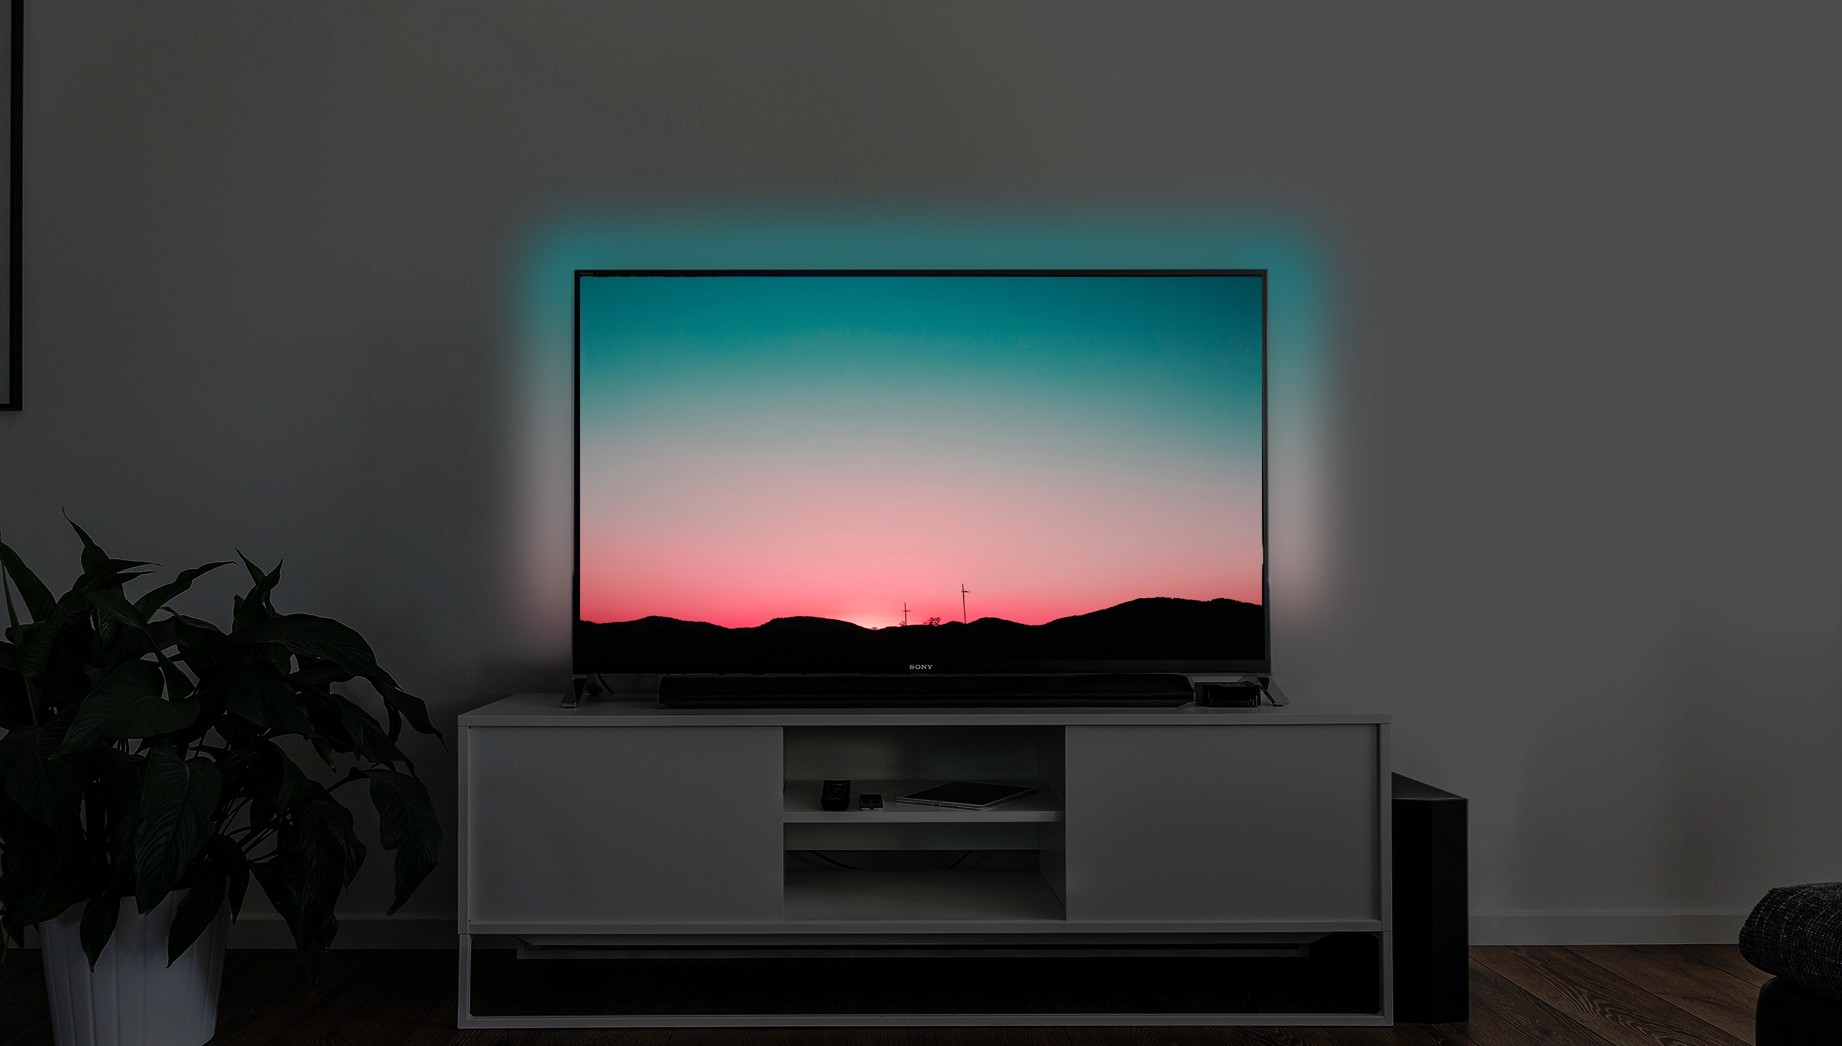 The Best Tv Experience Philips Ambilight Clone Hacker Noon Led Strips In My Device Use Ws2801 Controller Uses A Phillips Is An Immersive Lighting System Built Into Televisions Lights Around Match Color At Each Edge Of Screen